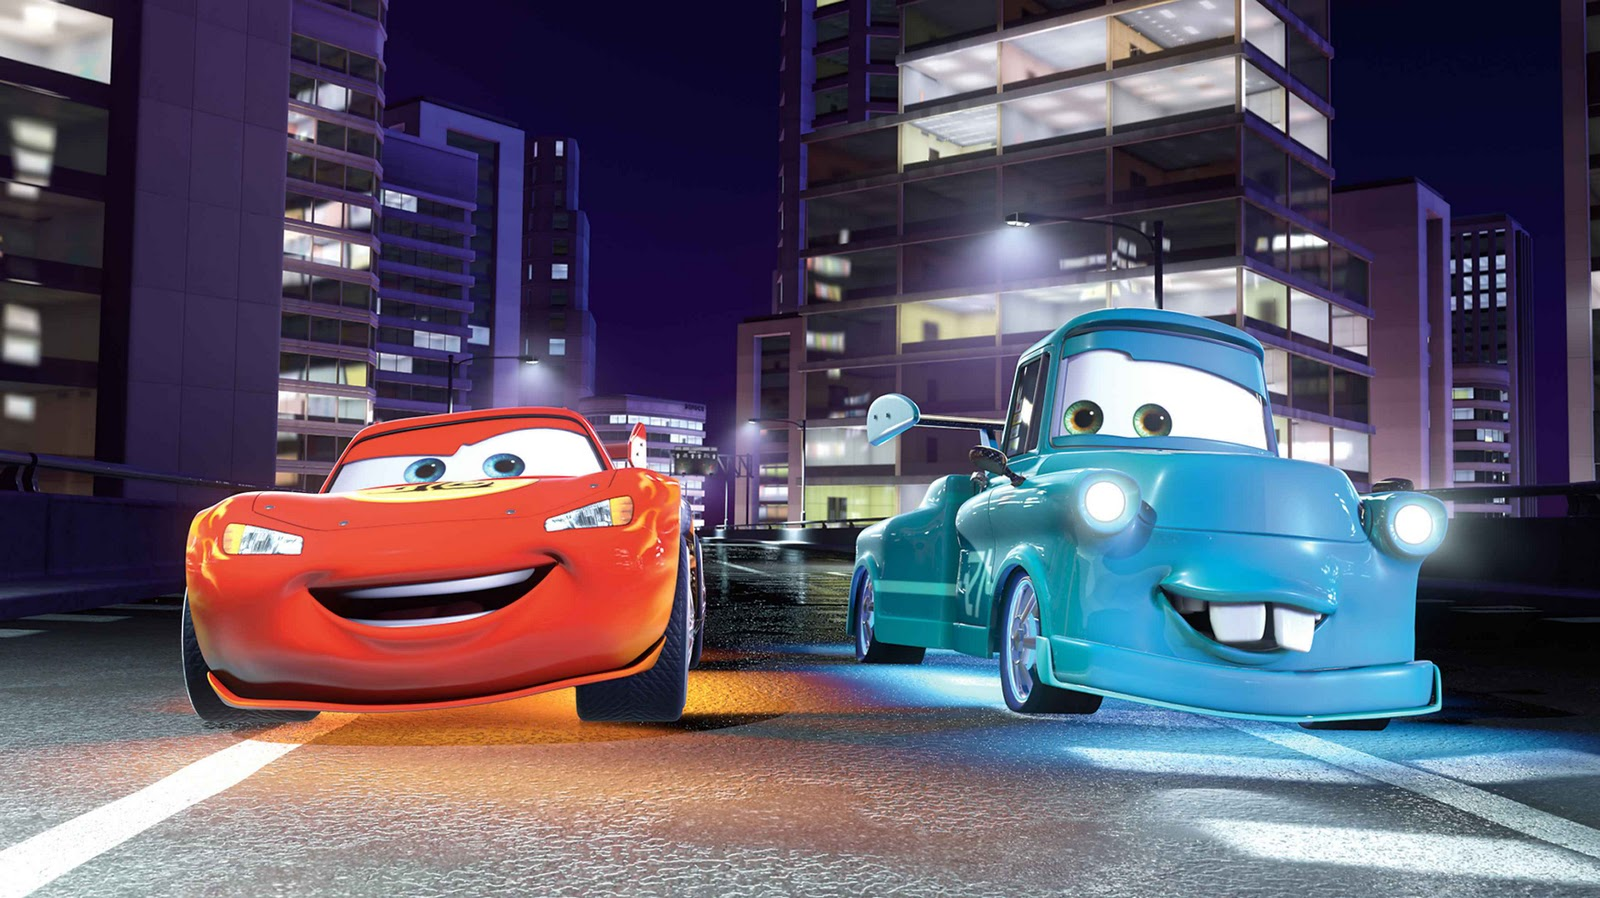 Cars 2 Around The World Story Characters Trailers Cast And